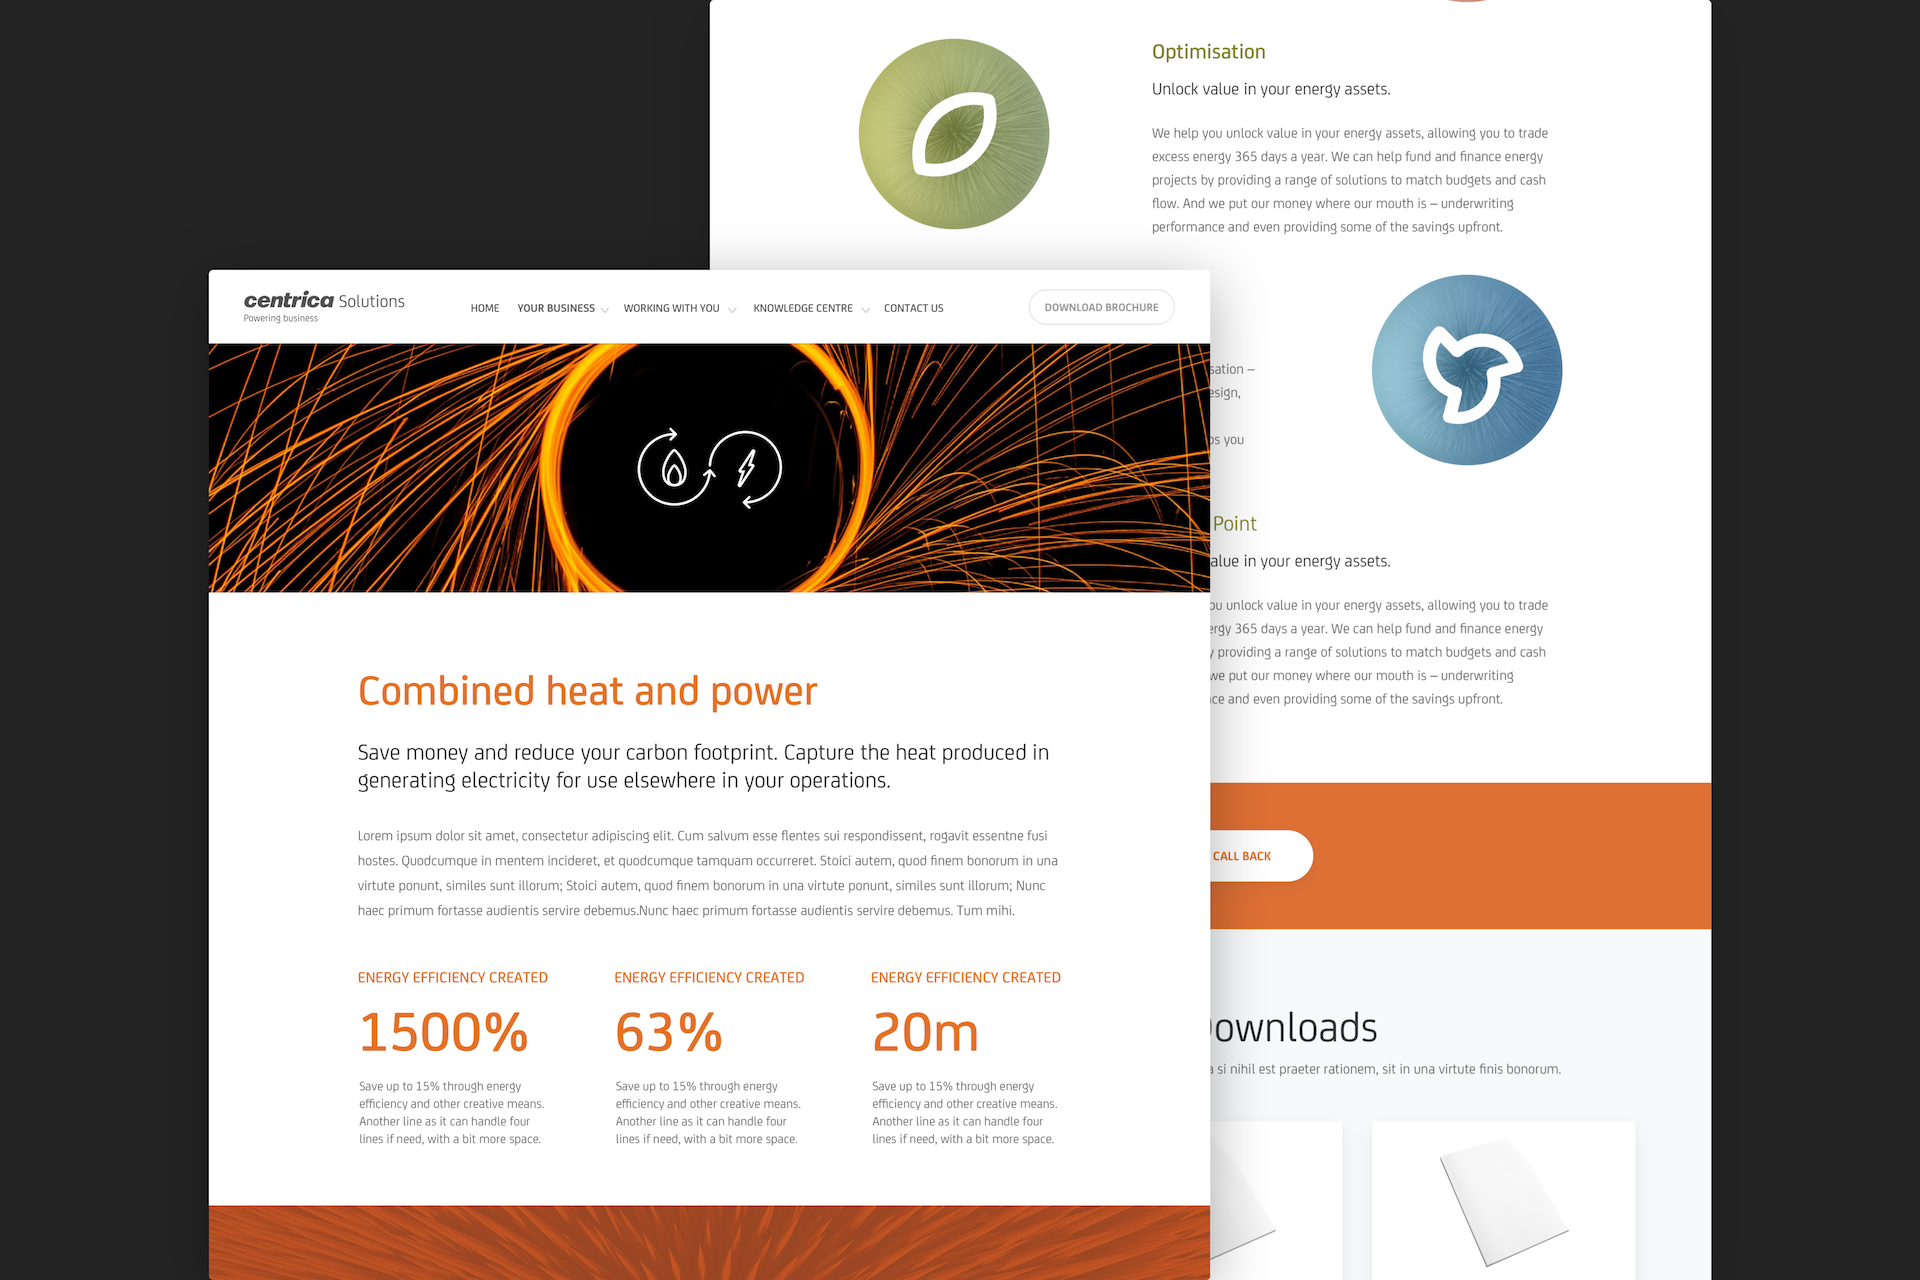 Centrica business solutions combined hear and power technology page for web